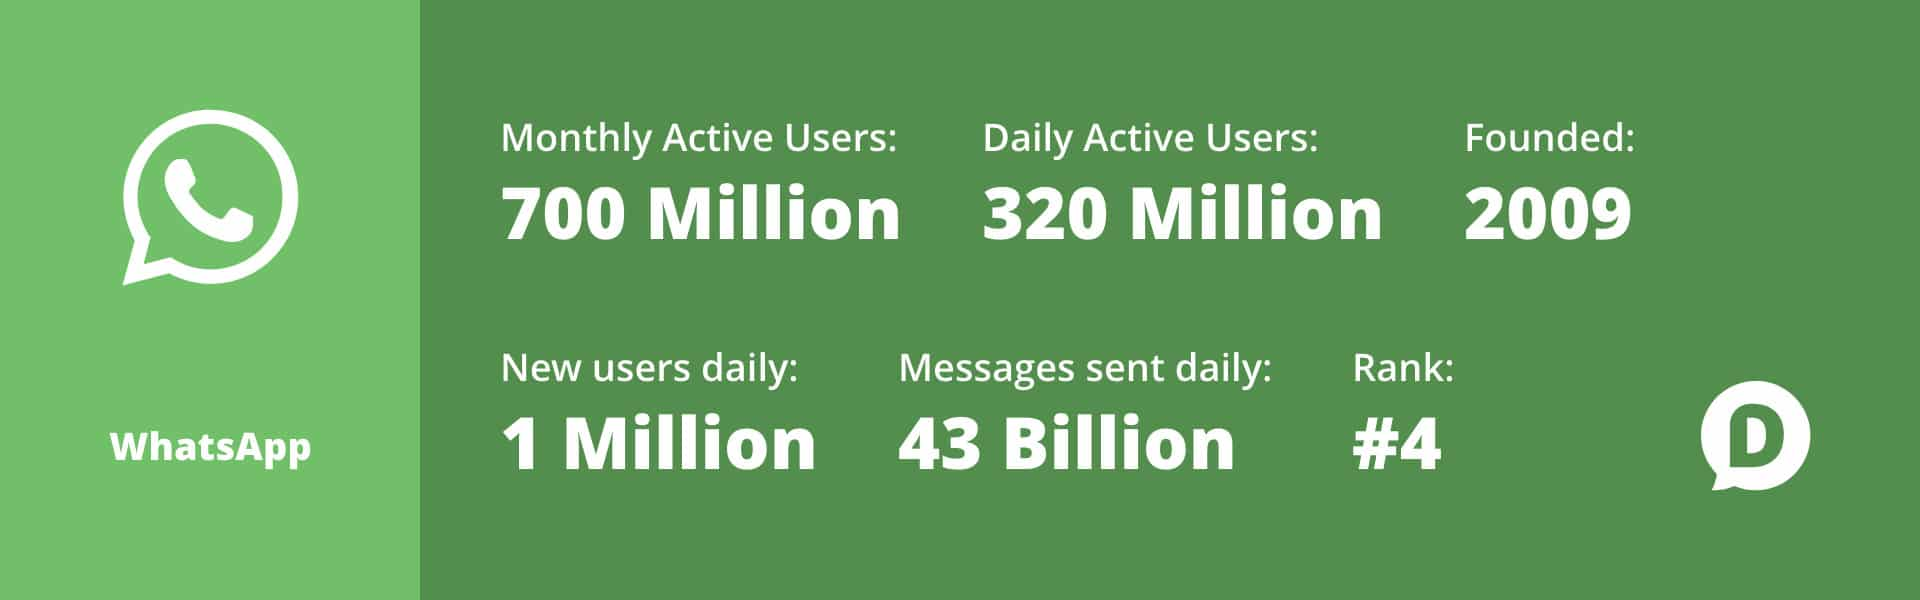 WhatsApp statistics for 2018